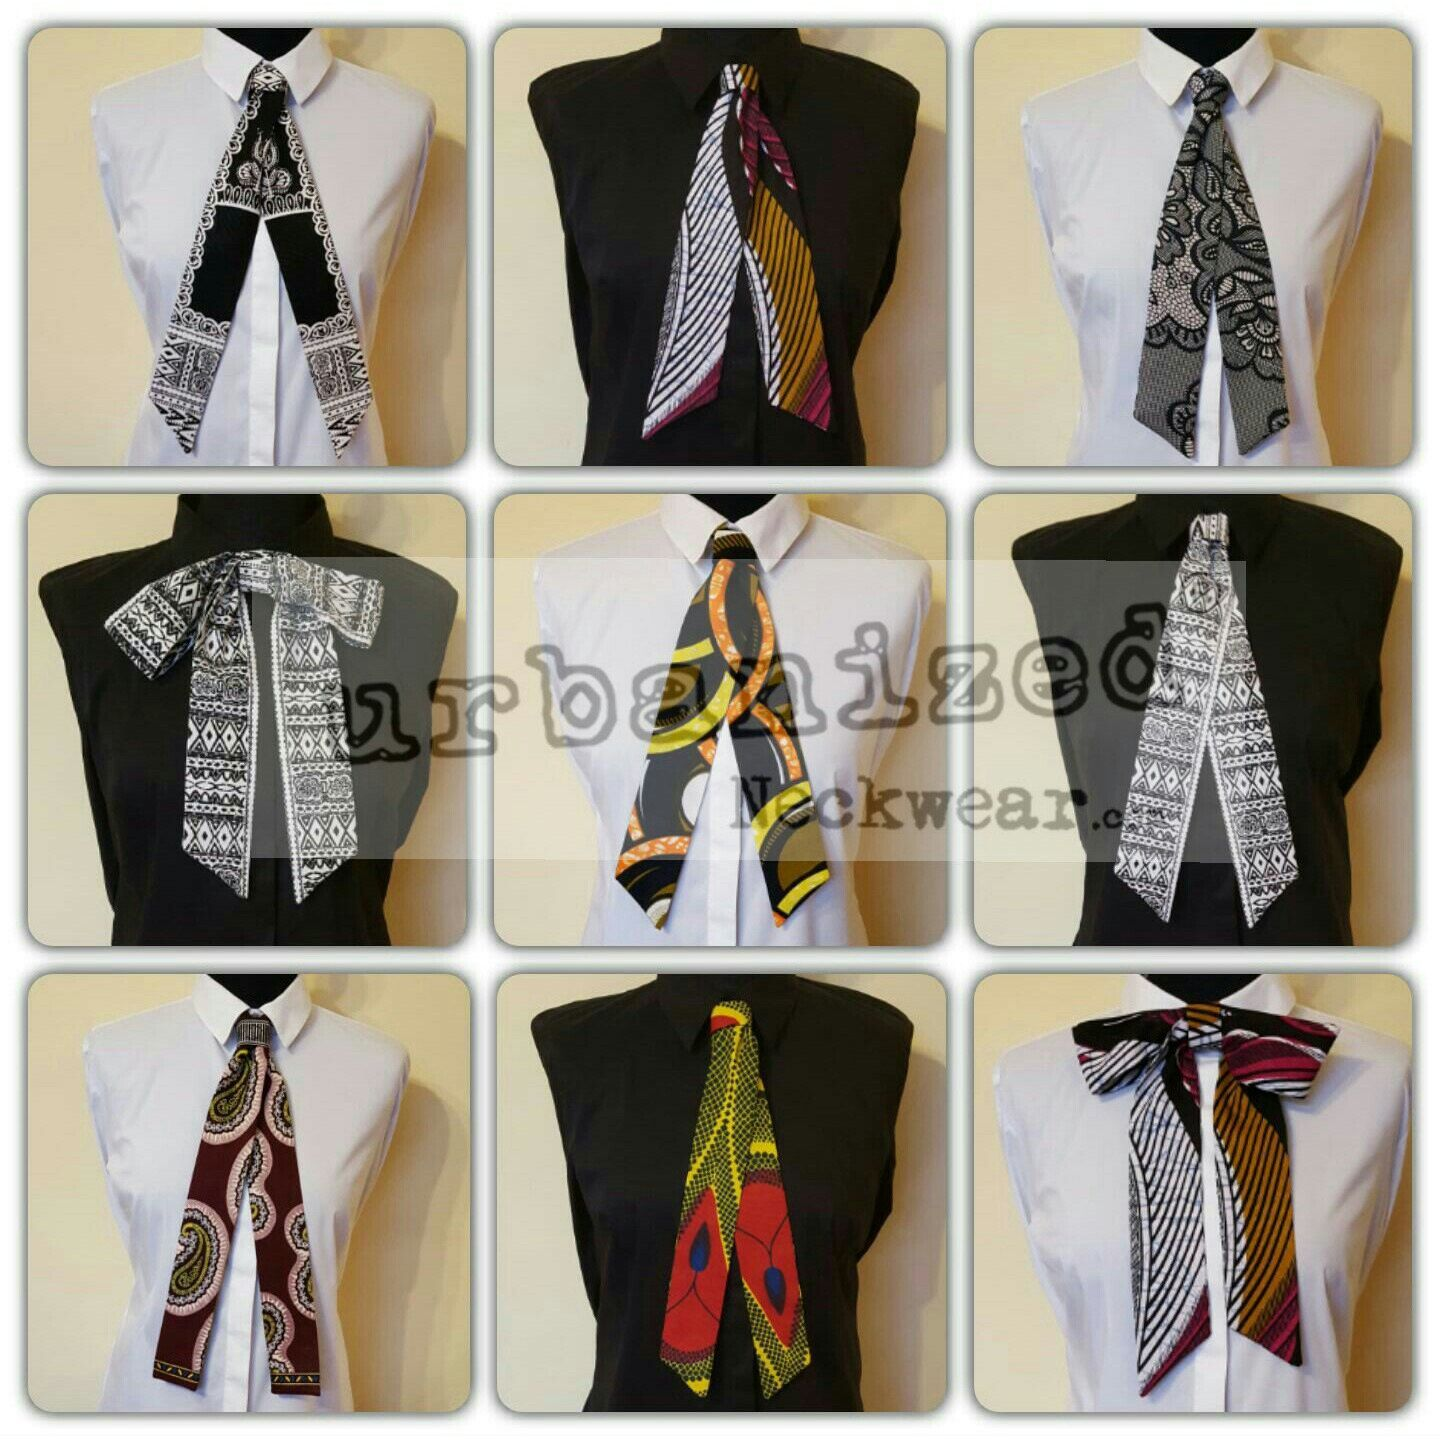 Brand NEW Neckwear Collection for 2017!  Step out in unique confidence in these new versatile cravat neckties. Transform your plain shirt or polo neck into a chic eye-catching timeless outfit and watch those heads turn ❤  www.urbanizedneckwear.com